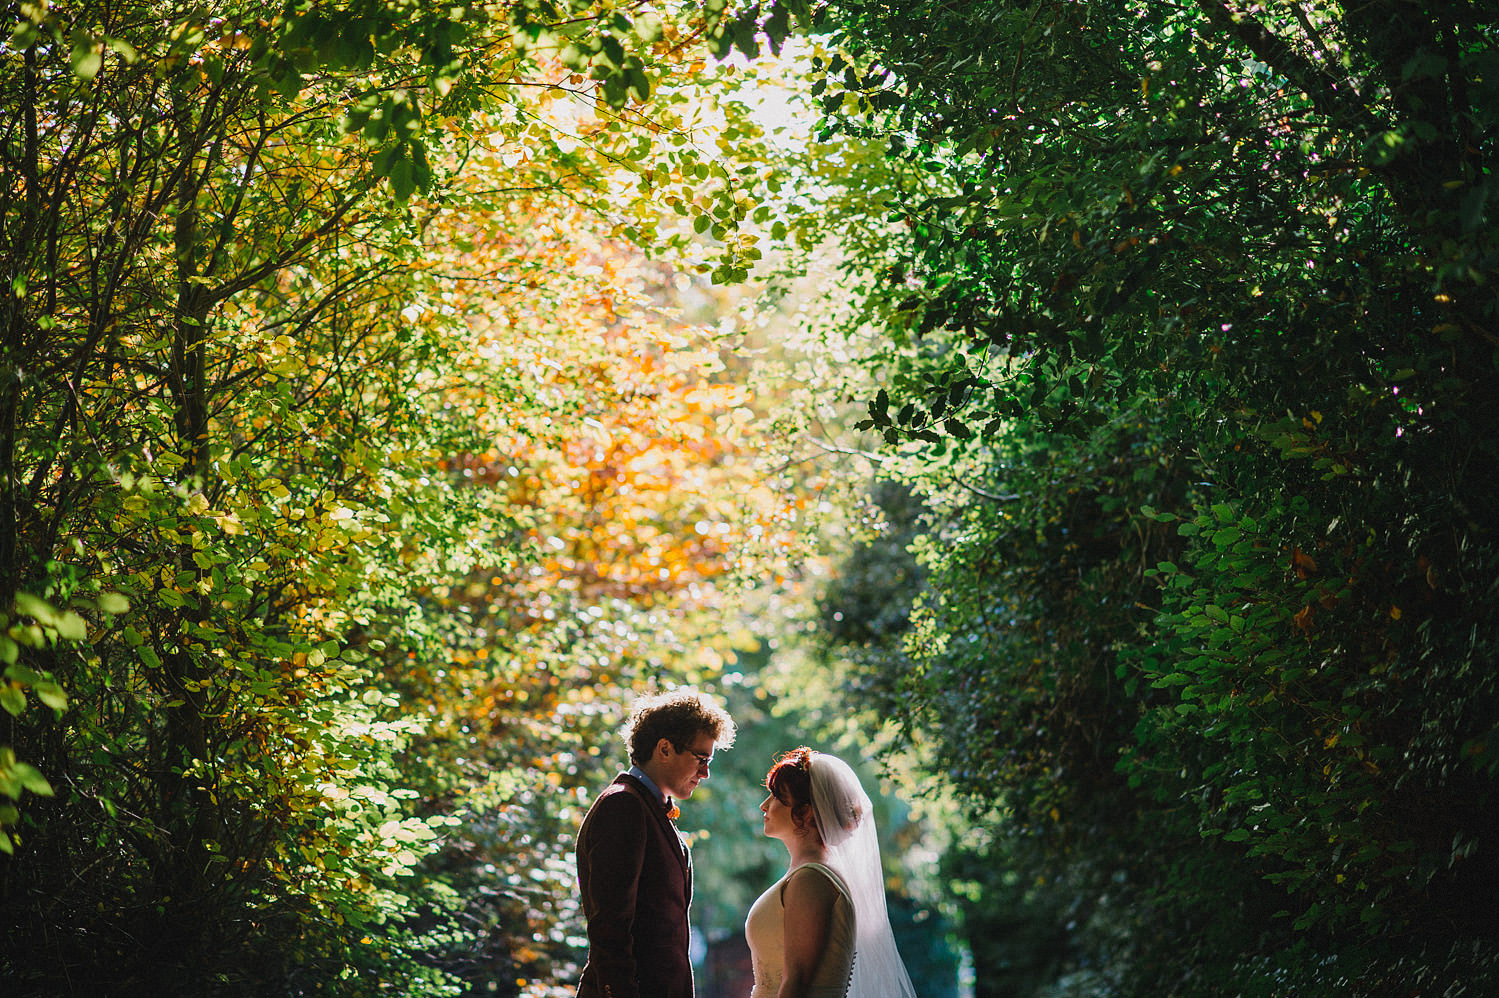 alternative+wedding+photographers+ireland-002.jpg